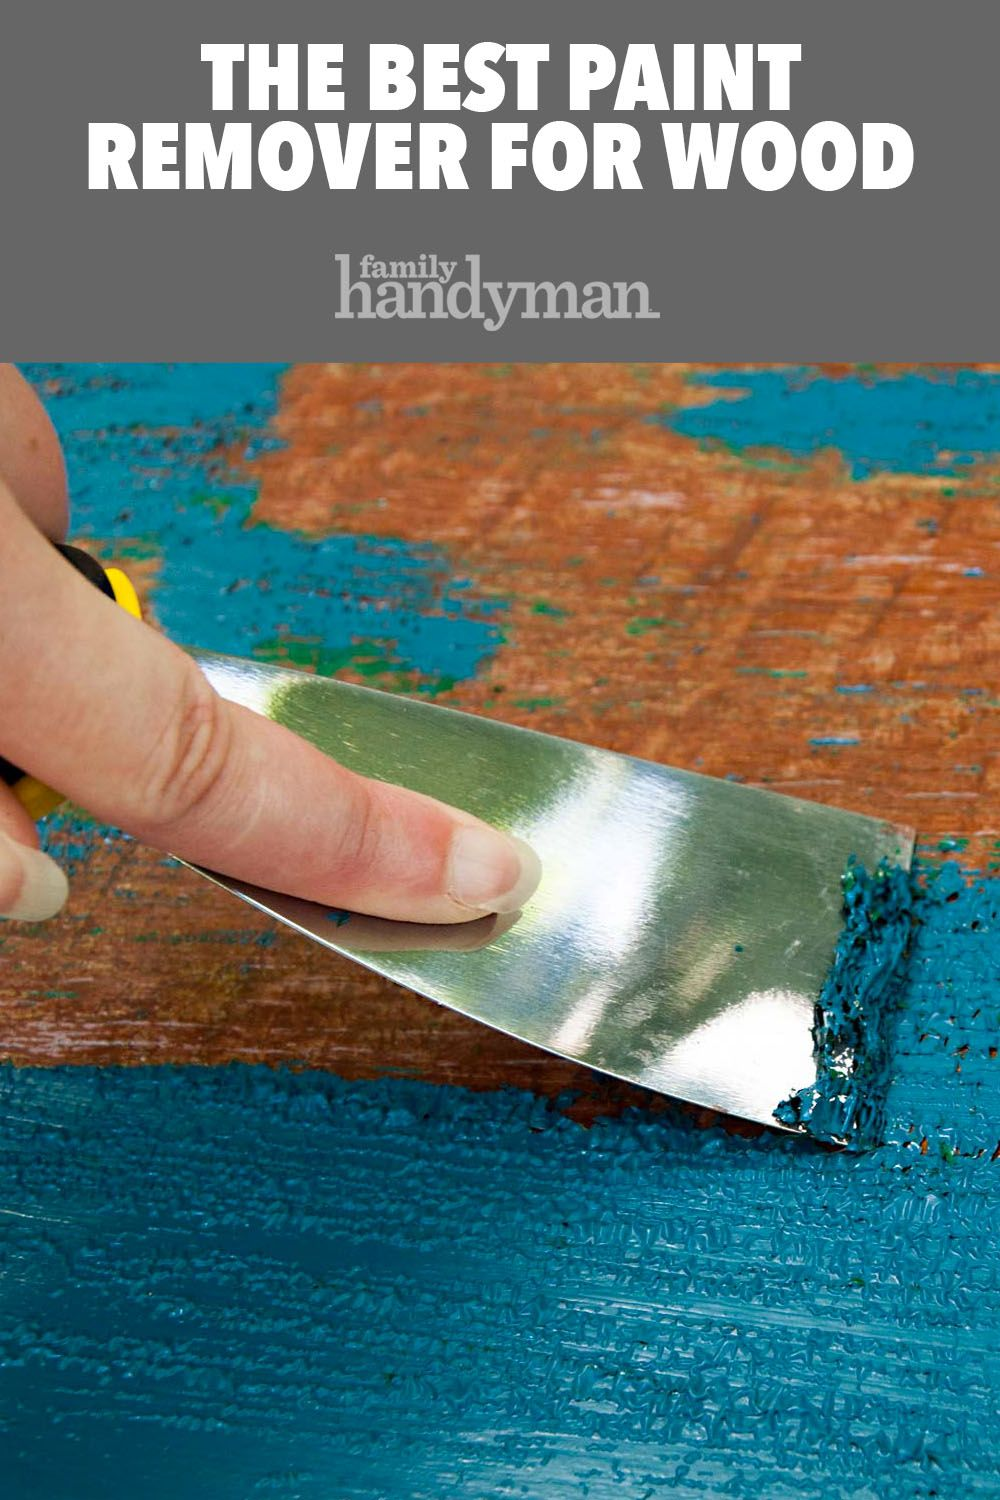 The Best Paint Remover For Wood Paint Remover Stripping Paint From Wood Stripping Paint